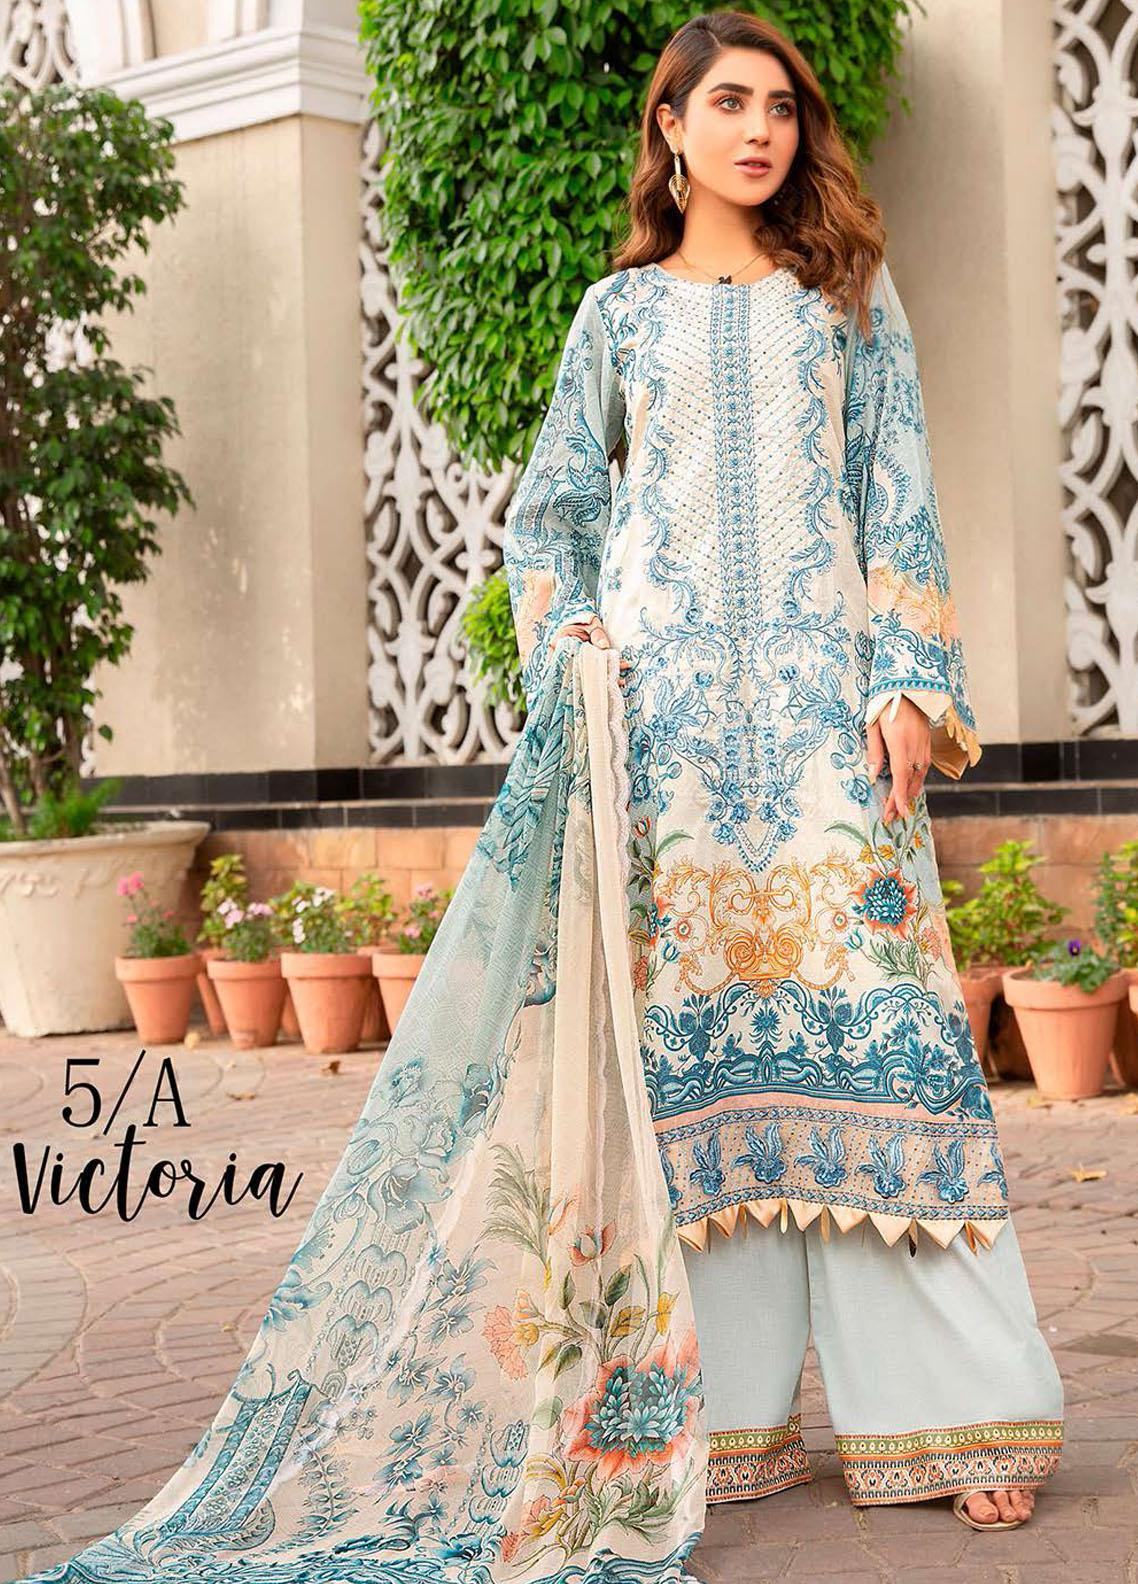 Libaas Embroidered Lawn Suits Unstitched 3 Piece LB21E 5A Victoria - Eid Collection